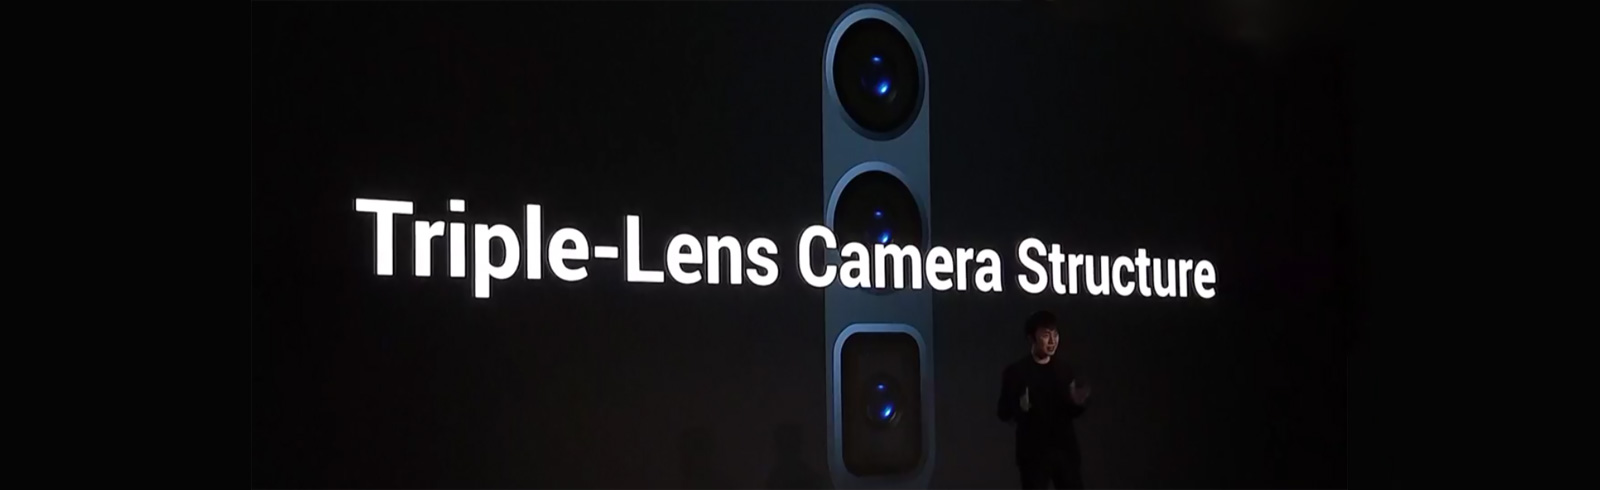 Oppo announced its 10x lossless zoom technology in Barcelona